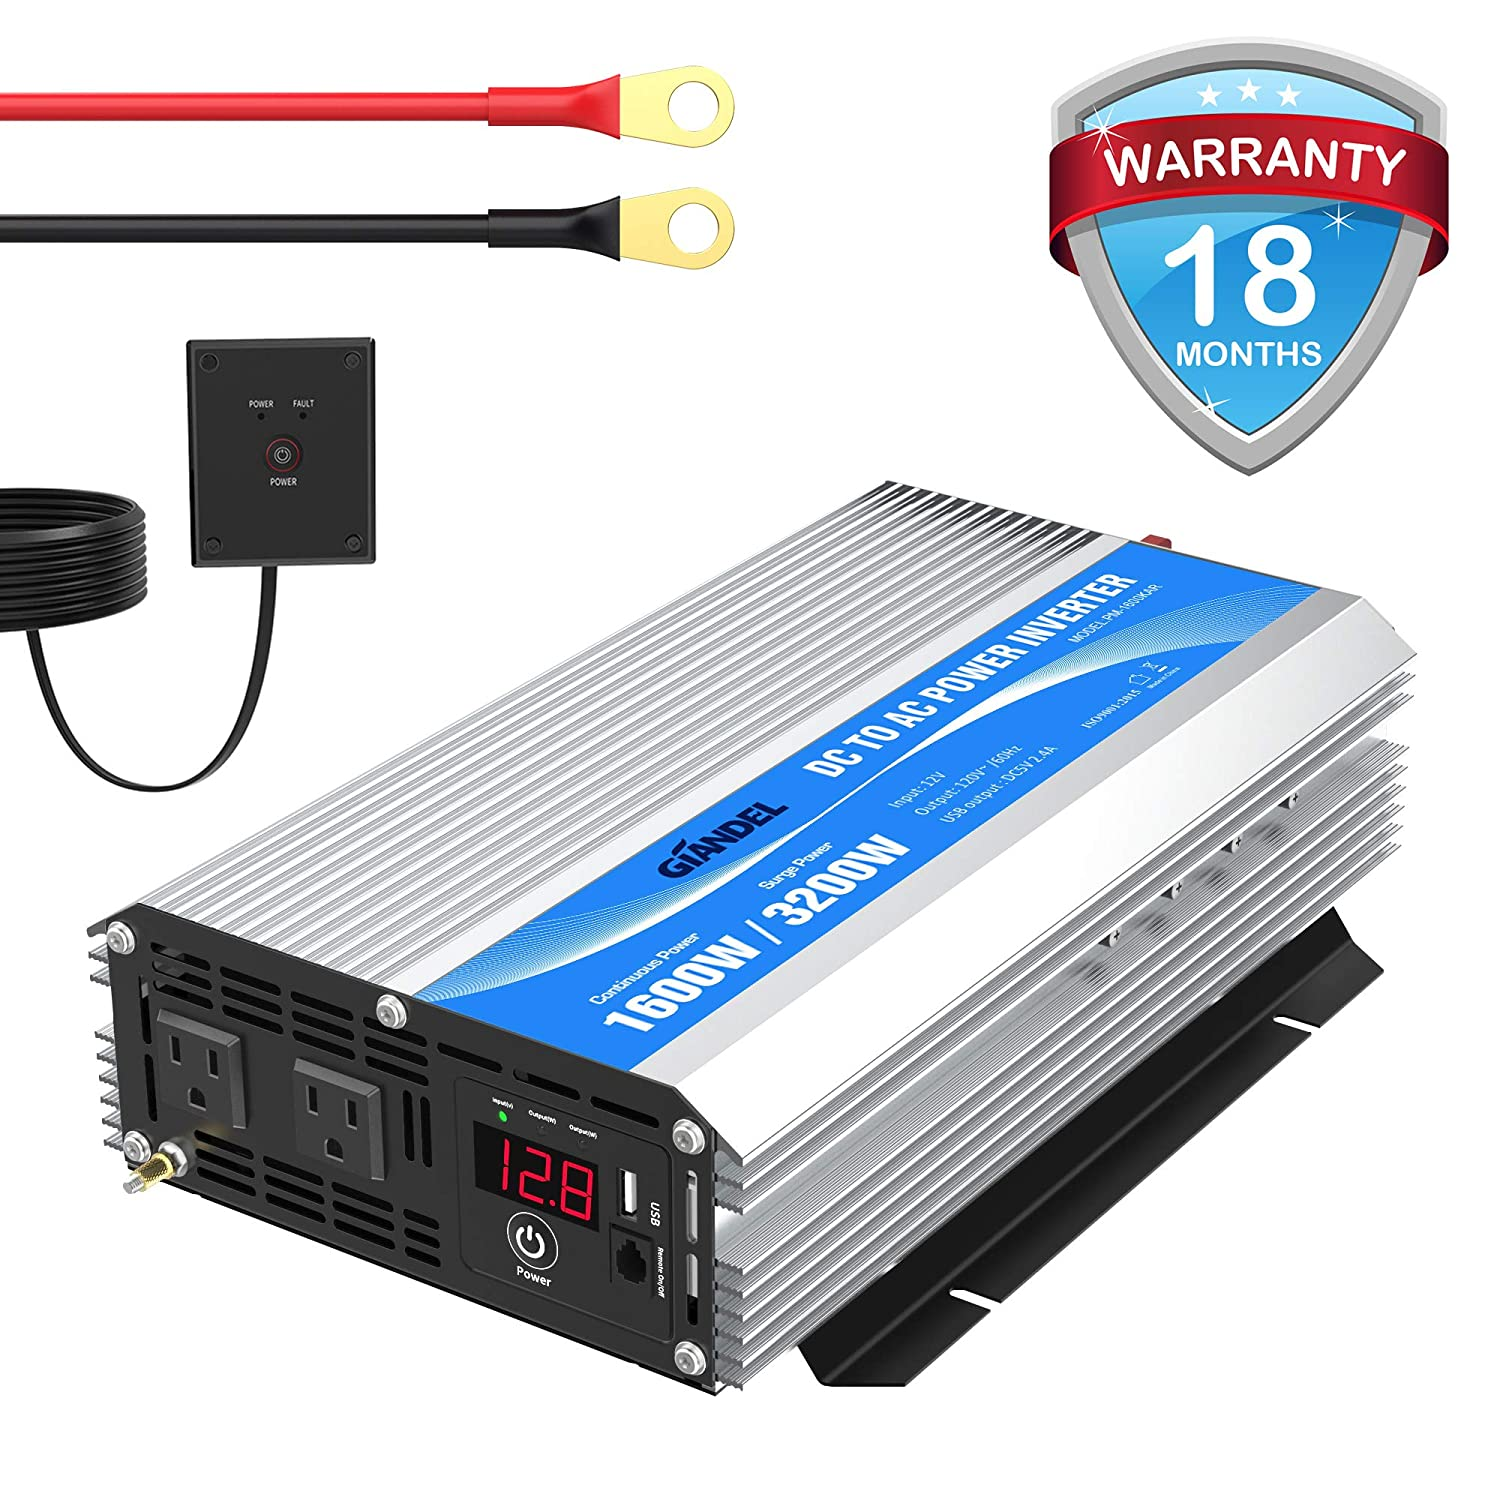 GIANDEL 1600Watt Power Inverter DC 12volt to AC 120volt with Remote Control & LED Display and 2.4A USB Port for Trucks Boats RV & Emergency